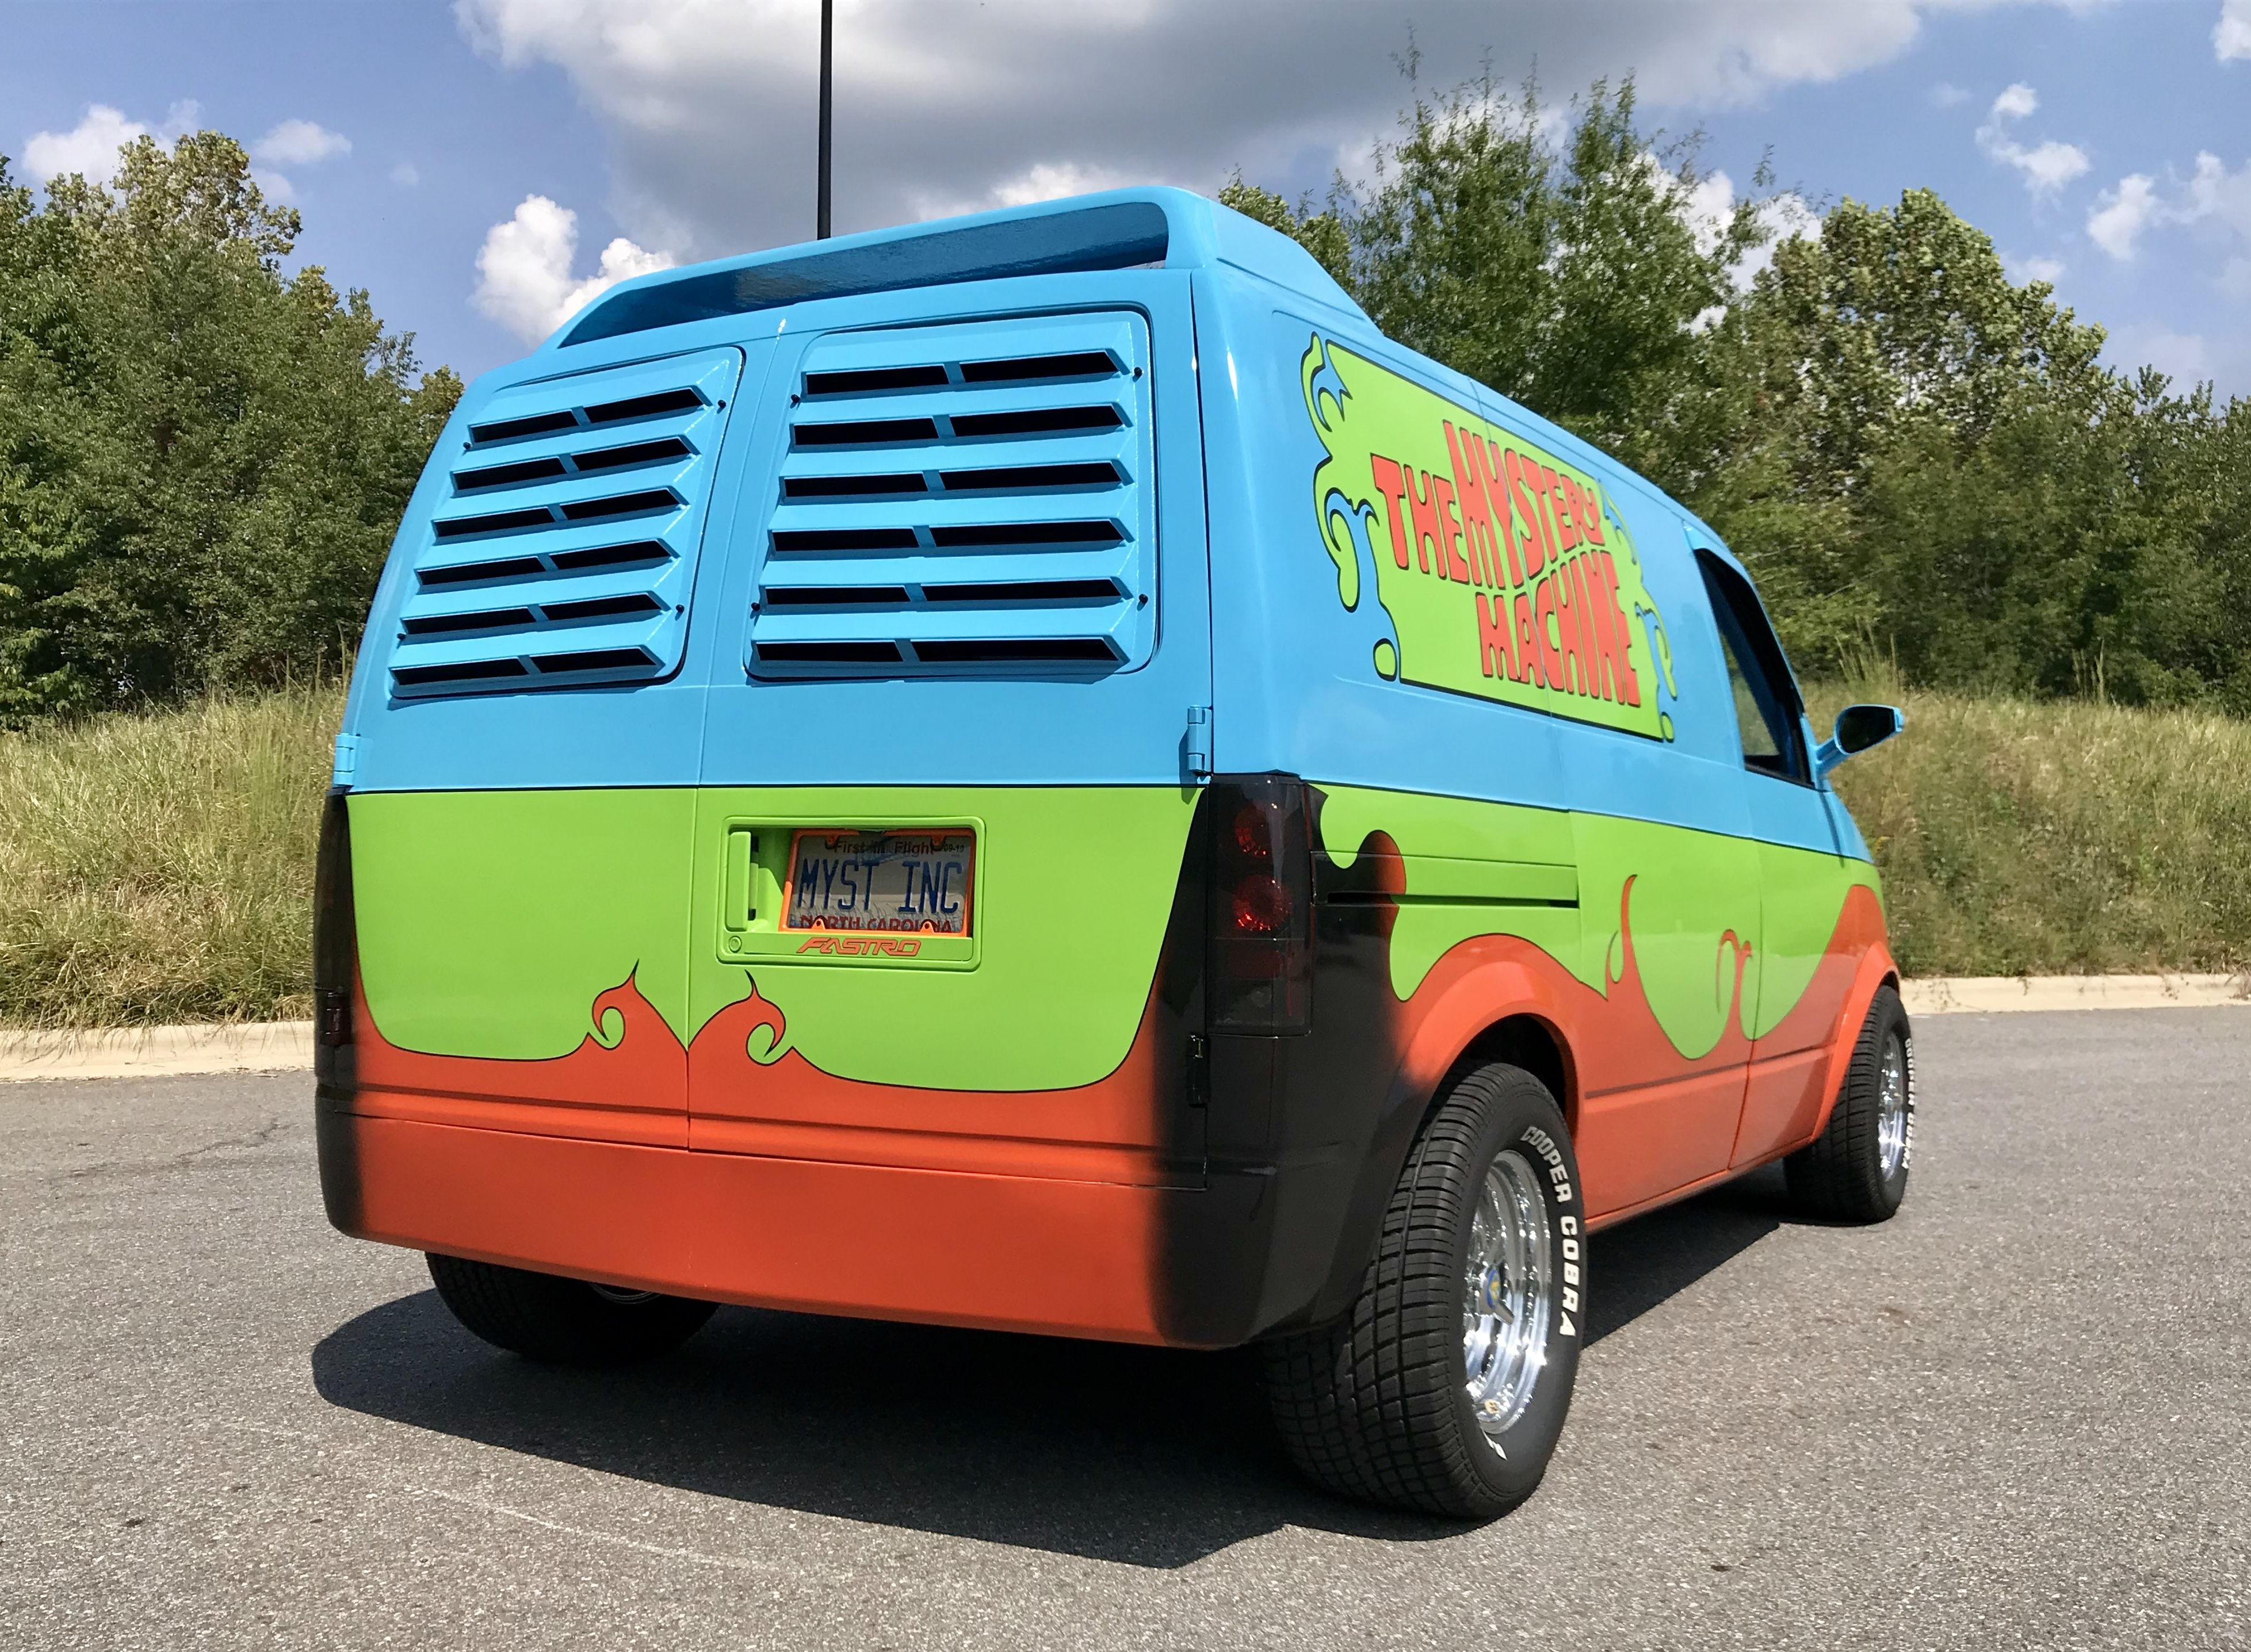 Chevrolet Astro Mystery Machine Image By Mike Hundley Chevrolet Van